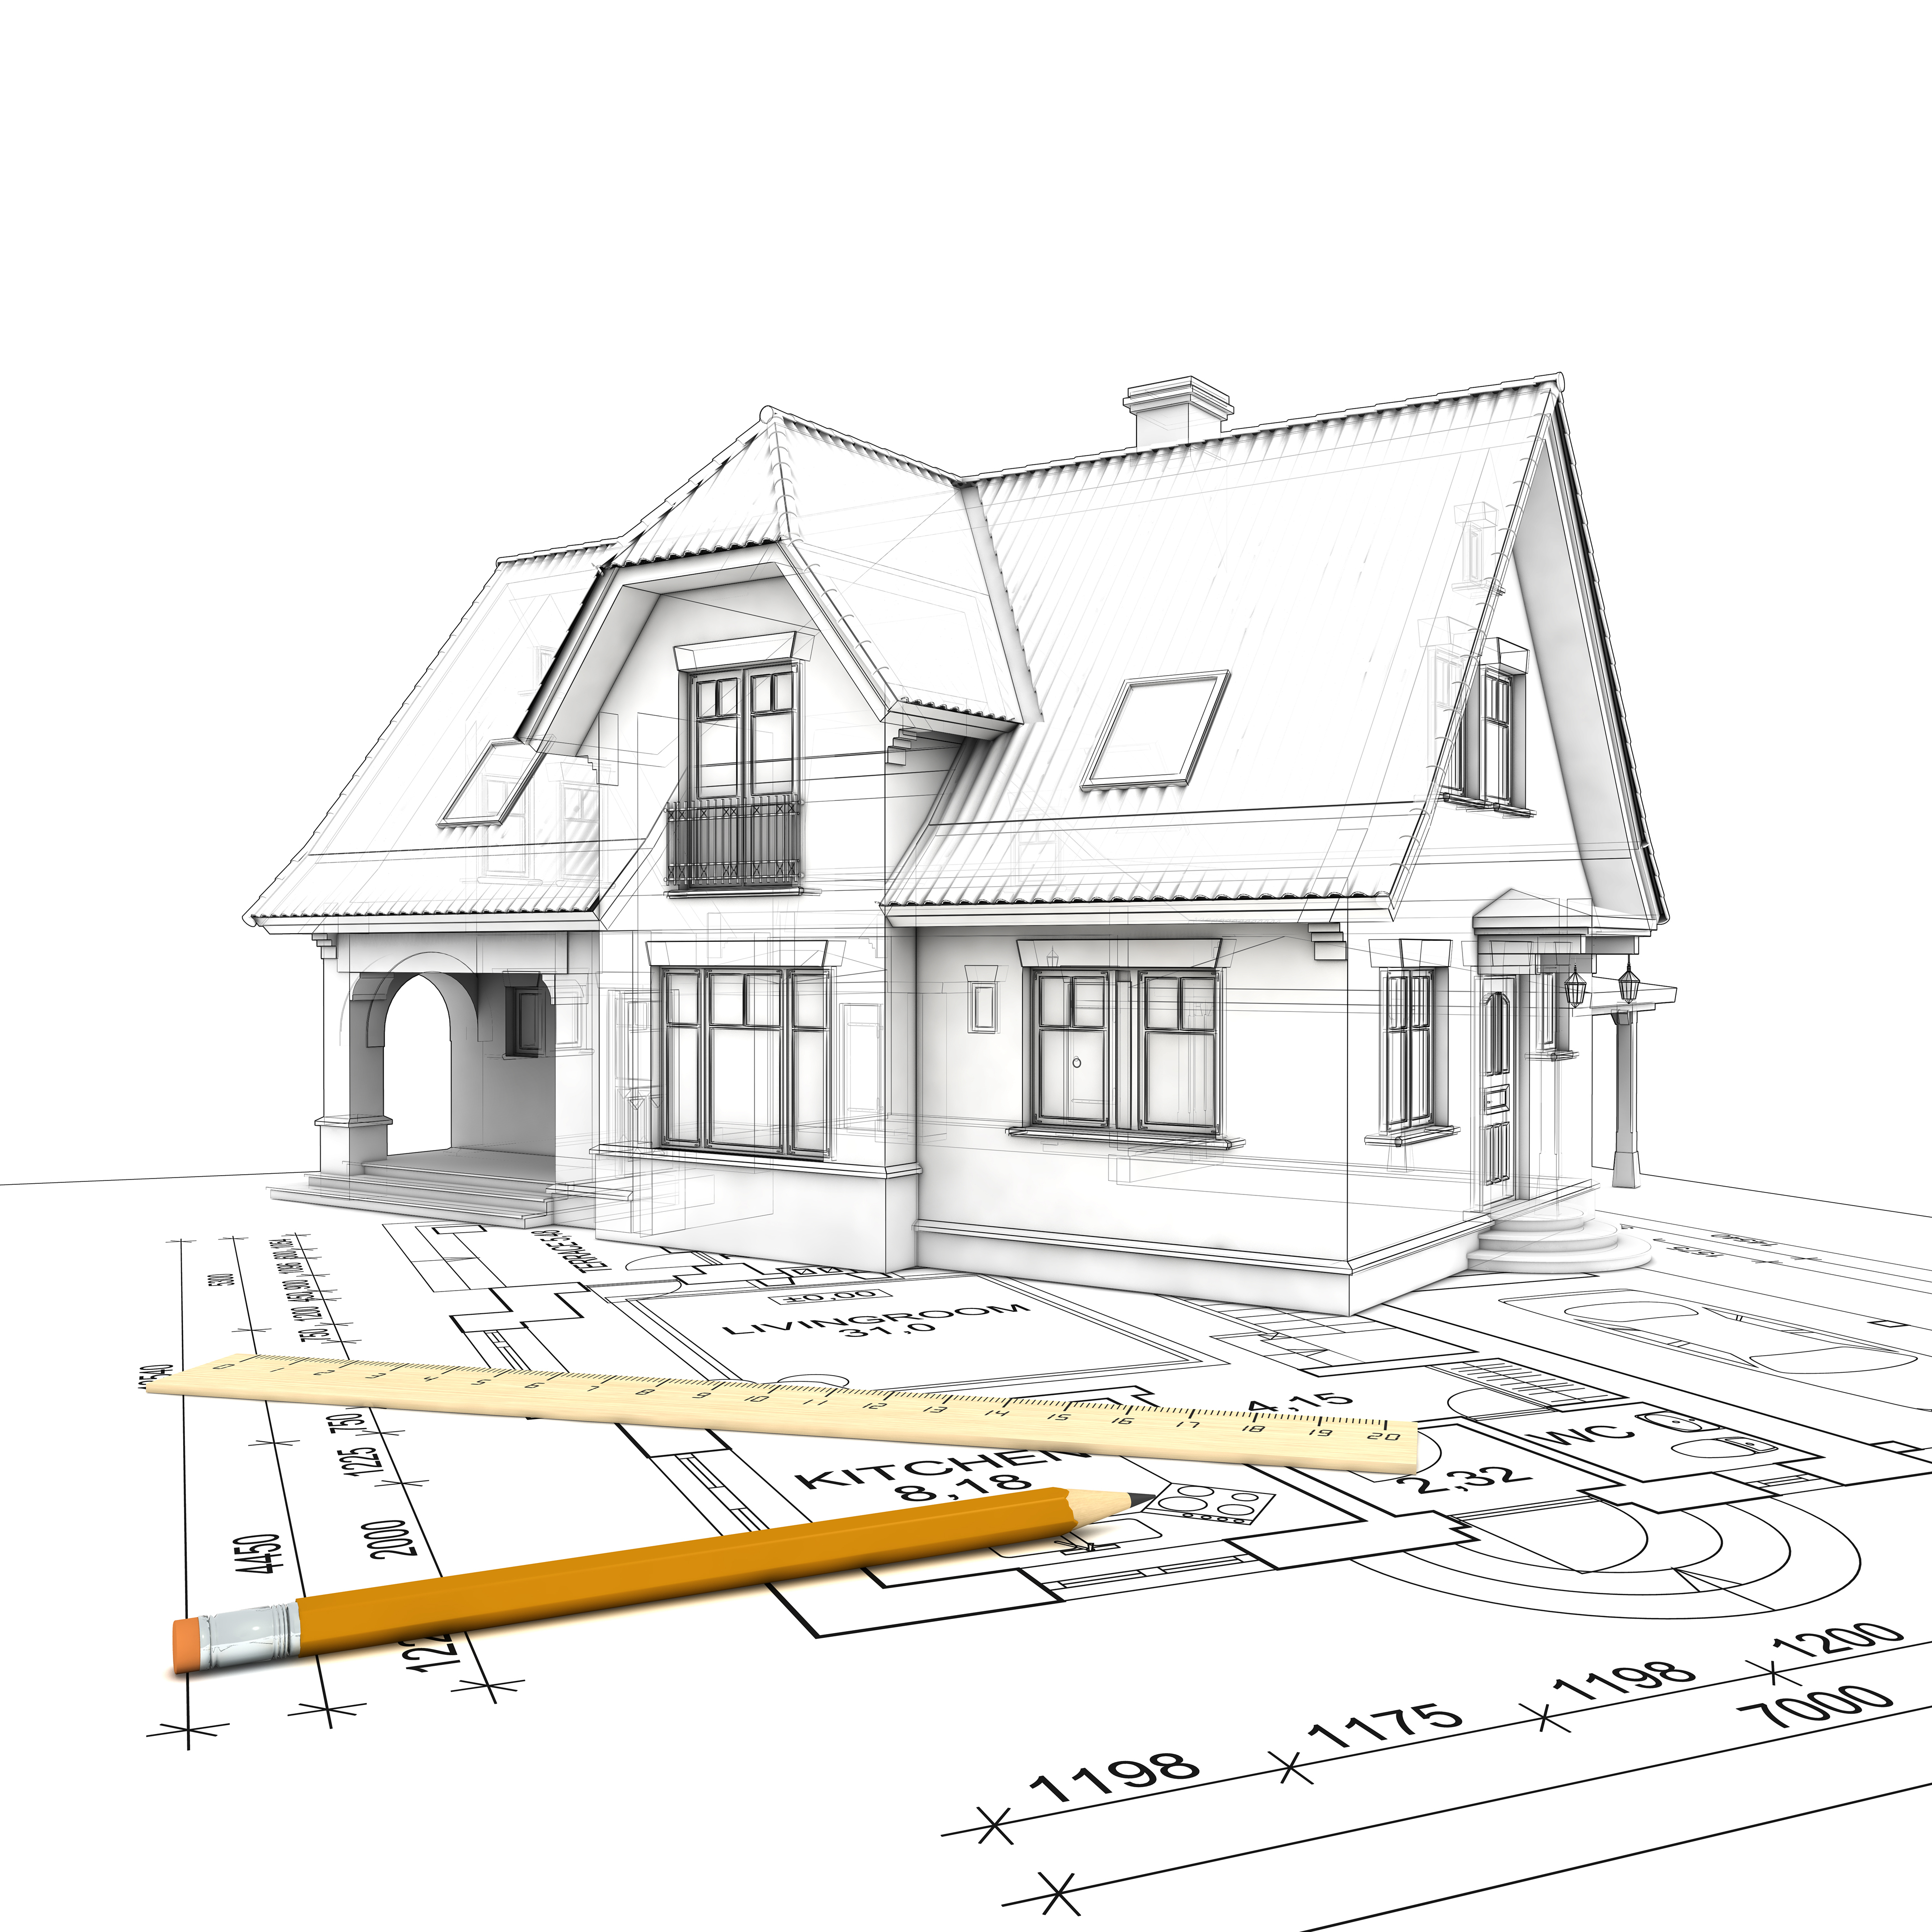 House 3d Drawing Building Contractors Kildare Dublin: 3d building design